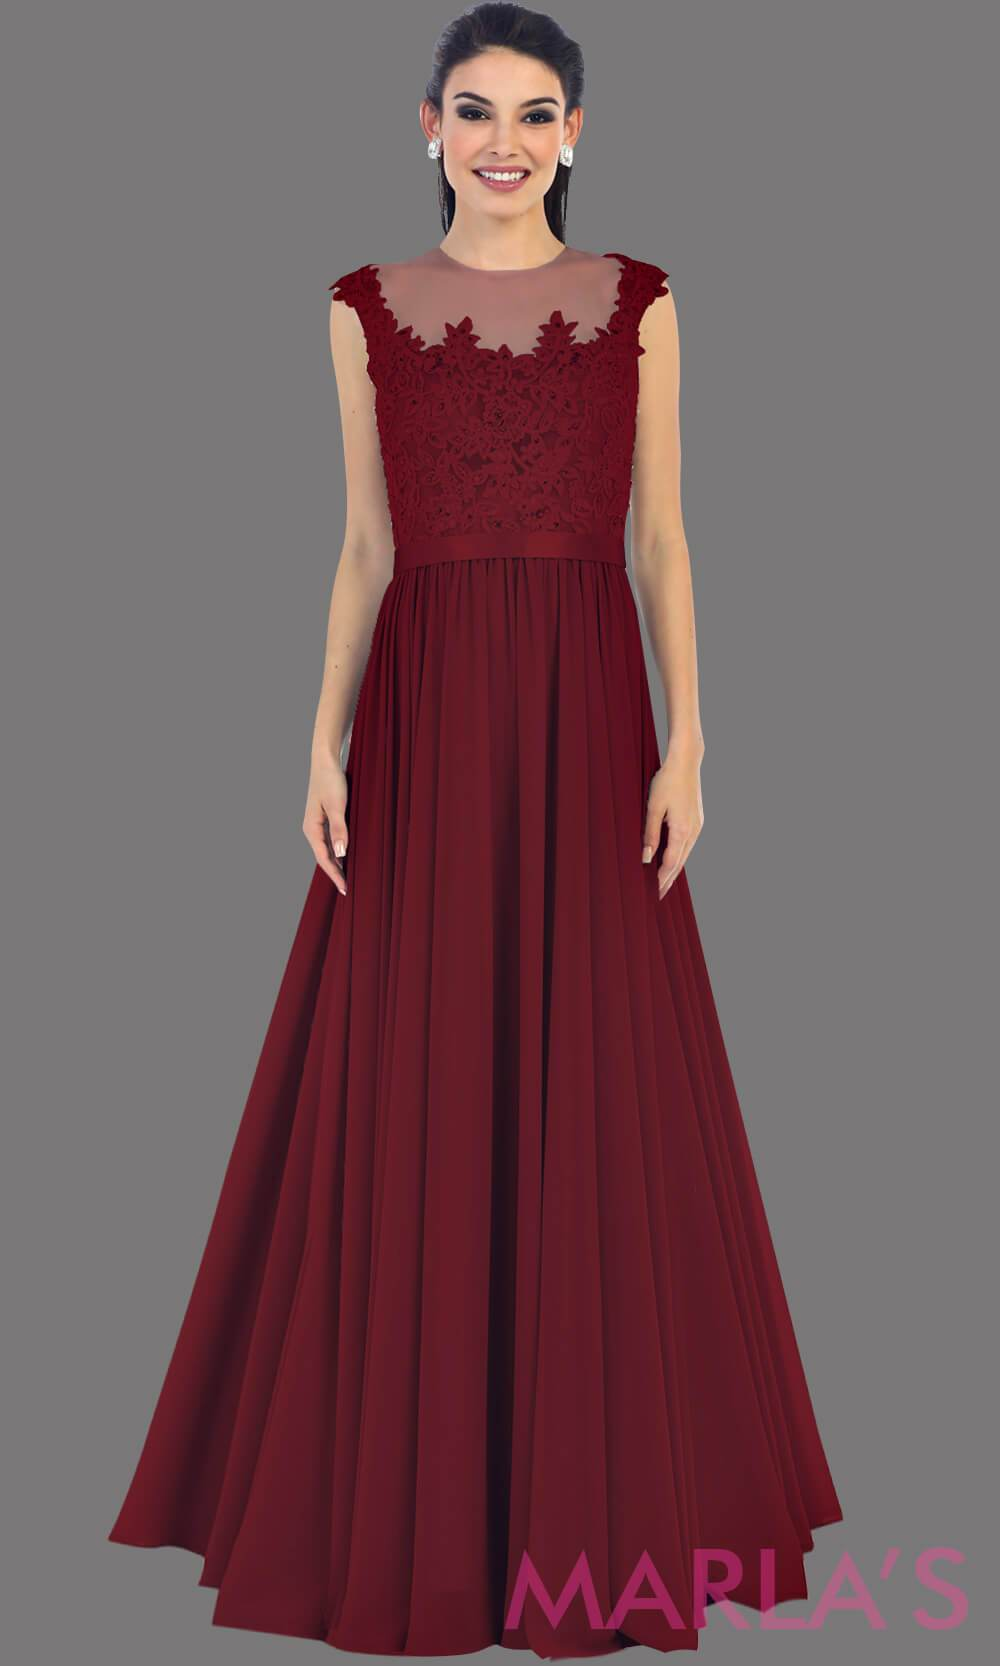 Long burgandy flowy dress with sheer lace bodice. It has a high neck and high back with an illusion neckline. The dark red is a perfect wedding guest dress for a simple party or modest prom dress.